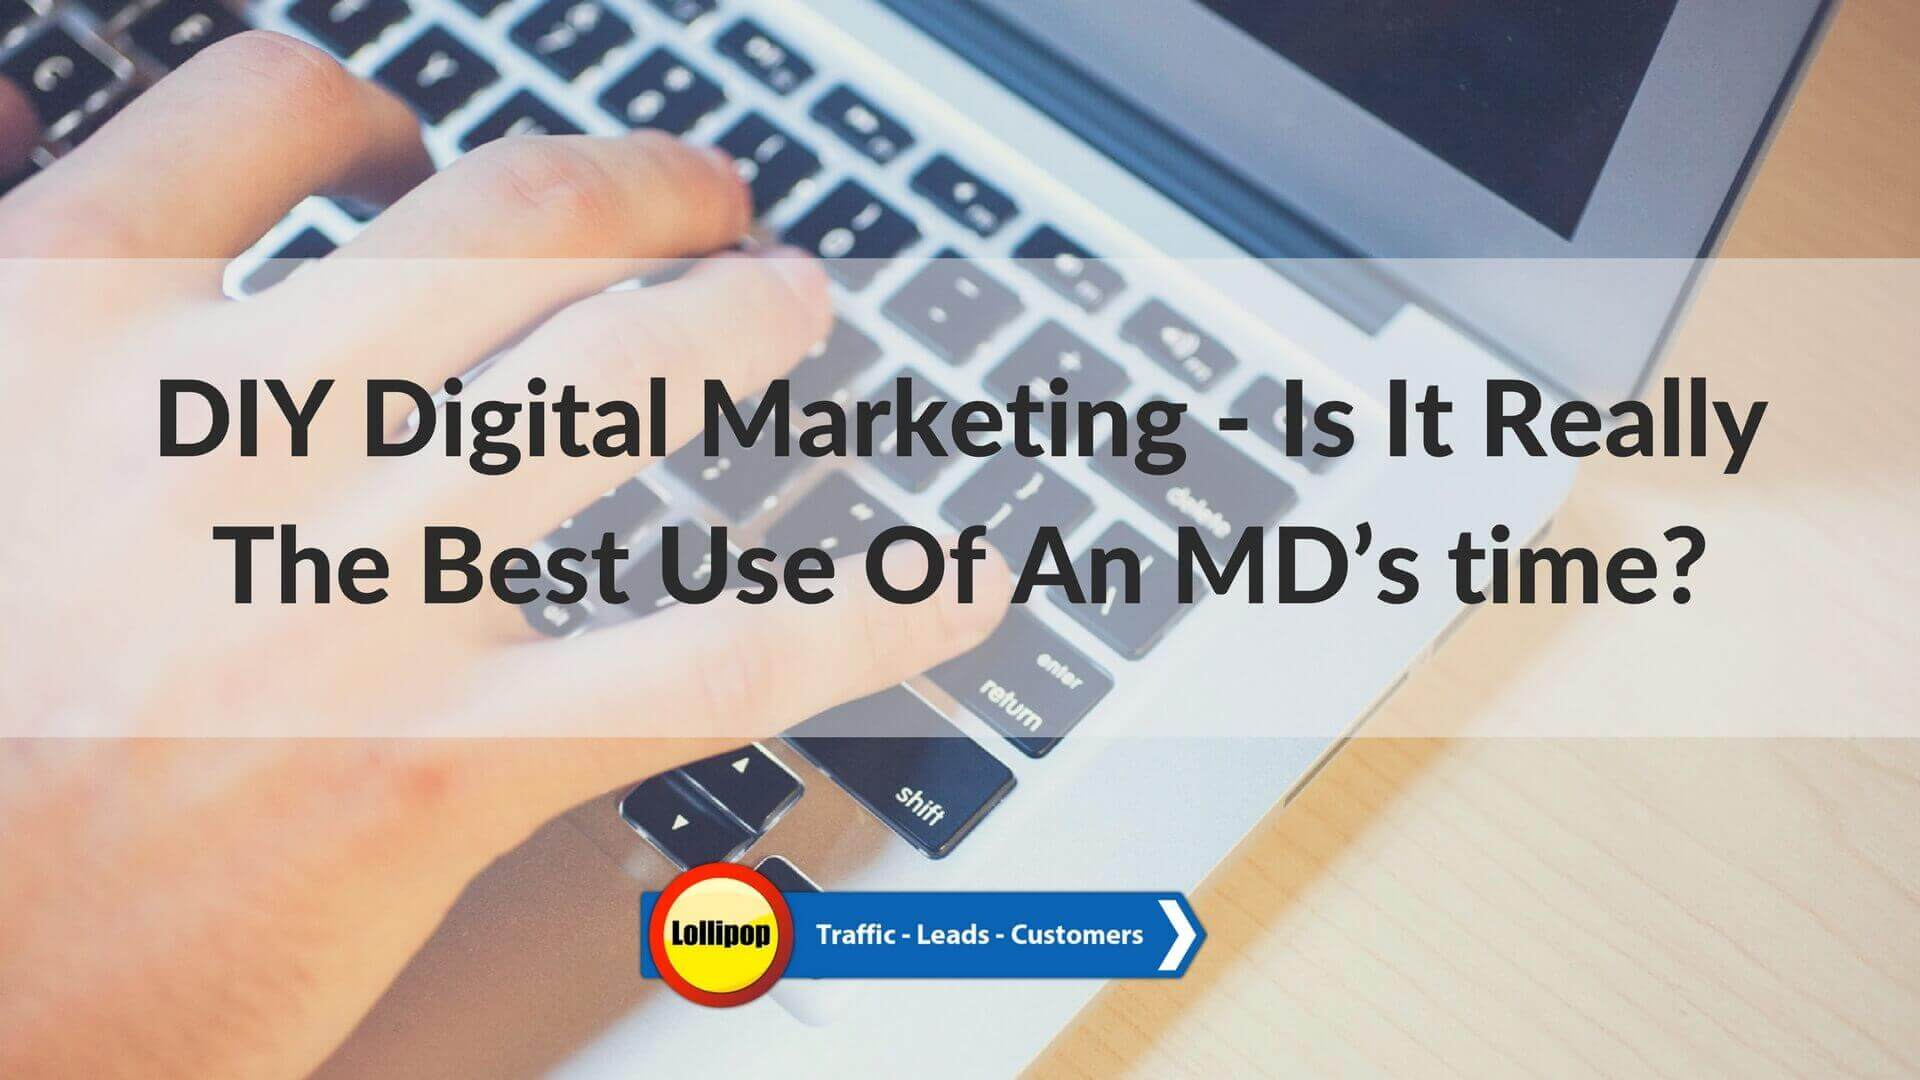 DIY-Digital-Marketing-Is-It-Really-The-Best-Use-Of-An-MDs-time